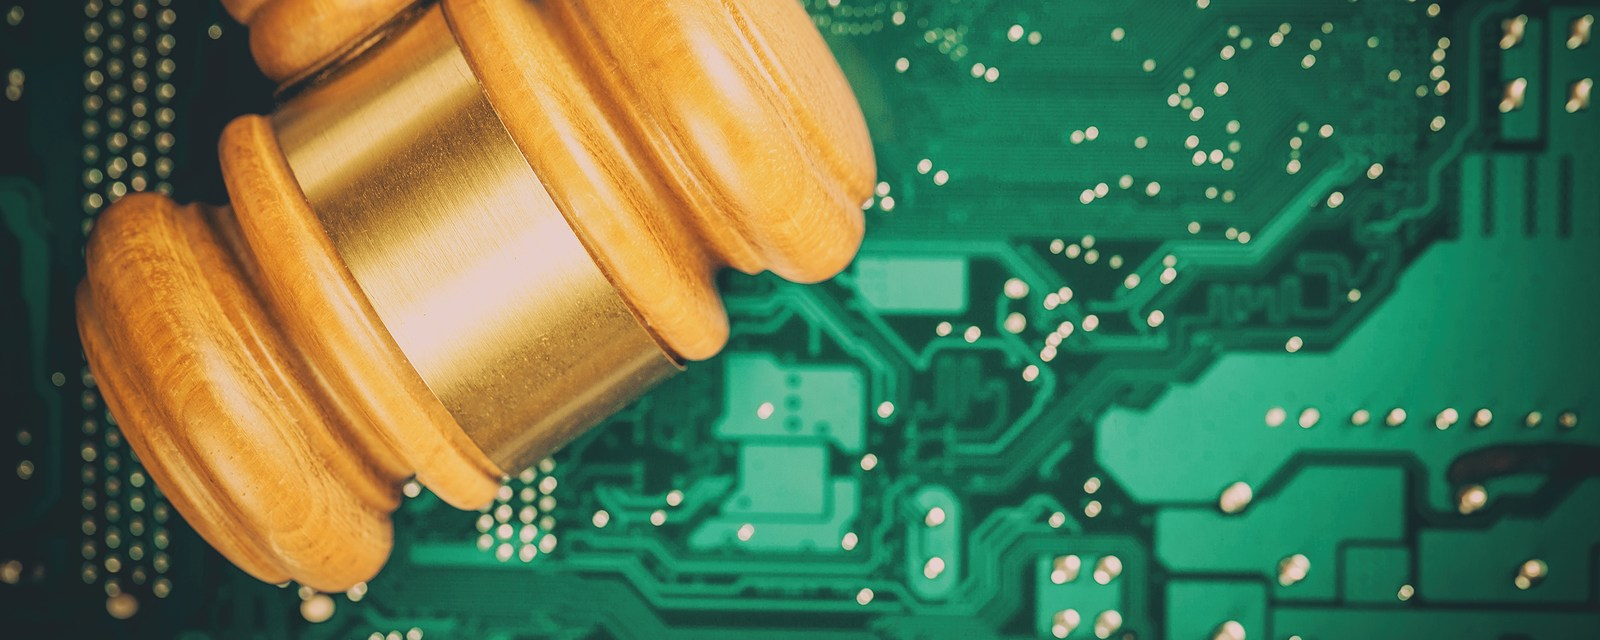 A New Data Protection Bill is Proposed By U.S. Senator